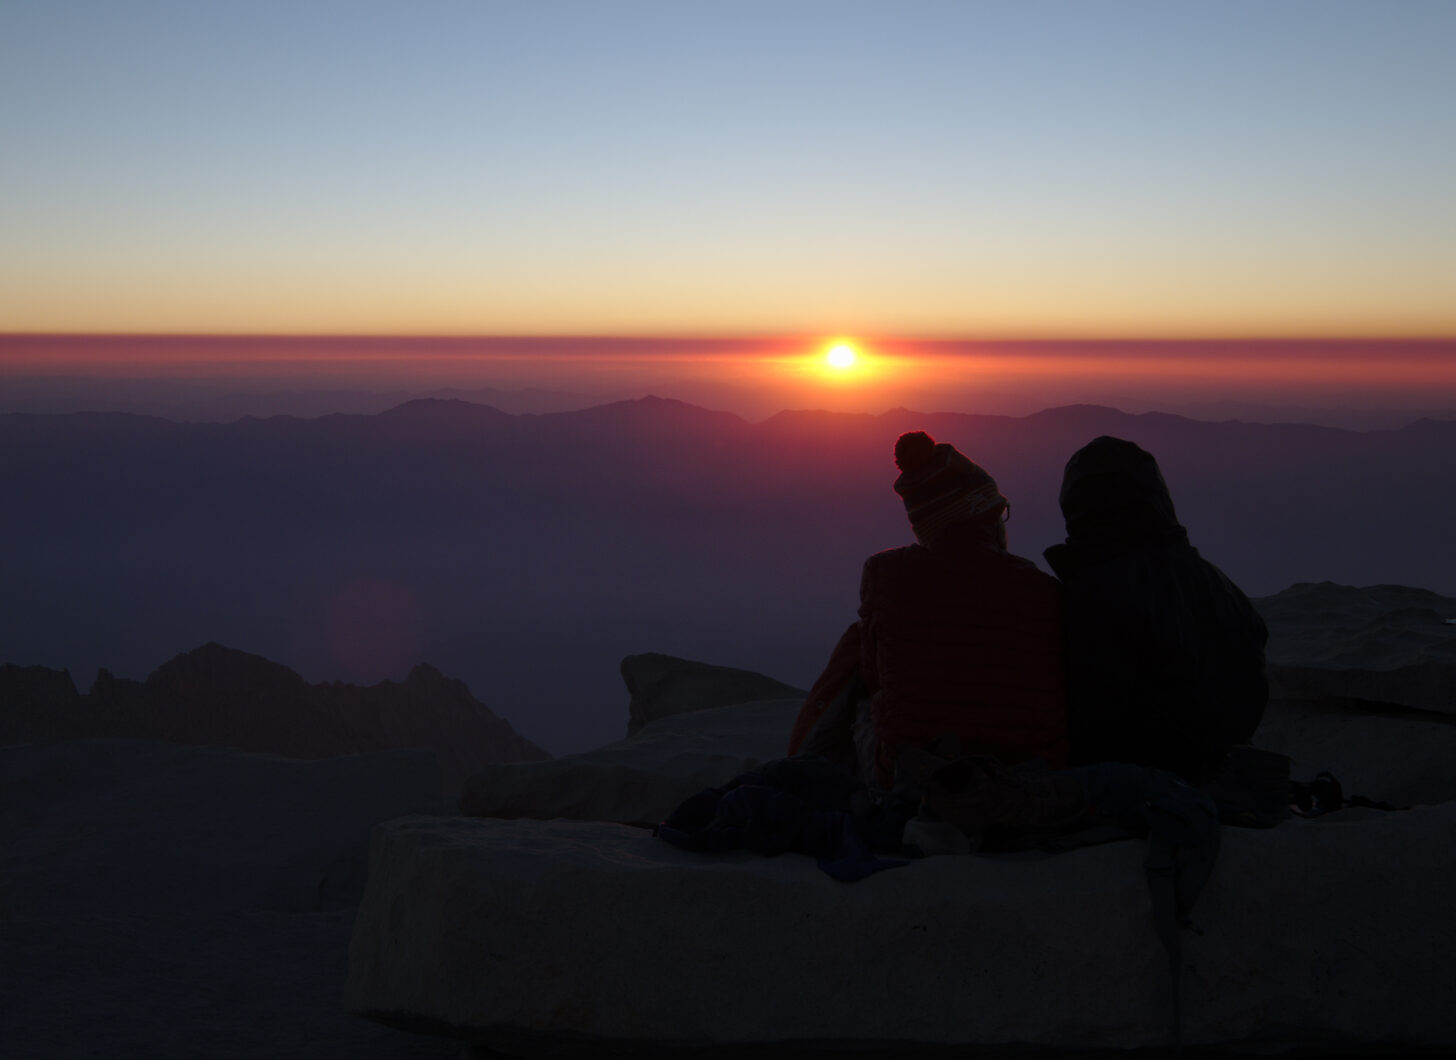 Sun rising through thin clouds over distant mountains, with two hikers silhouetted in the foreground.